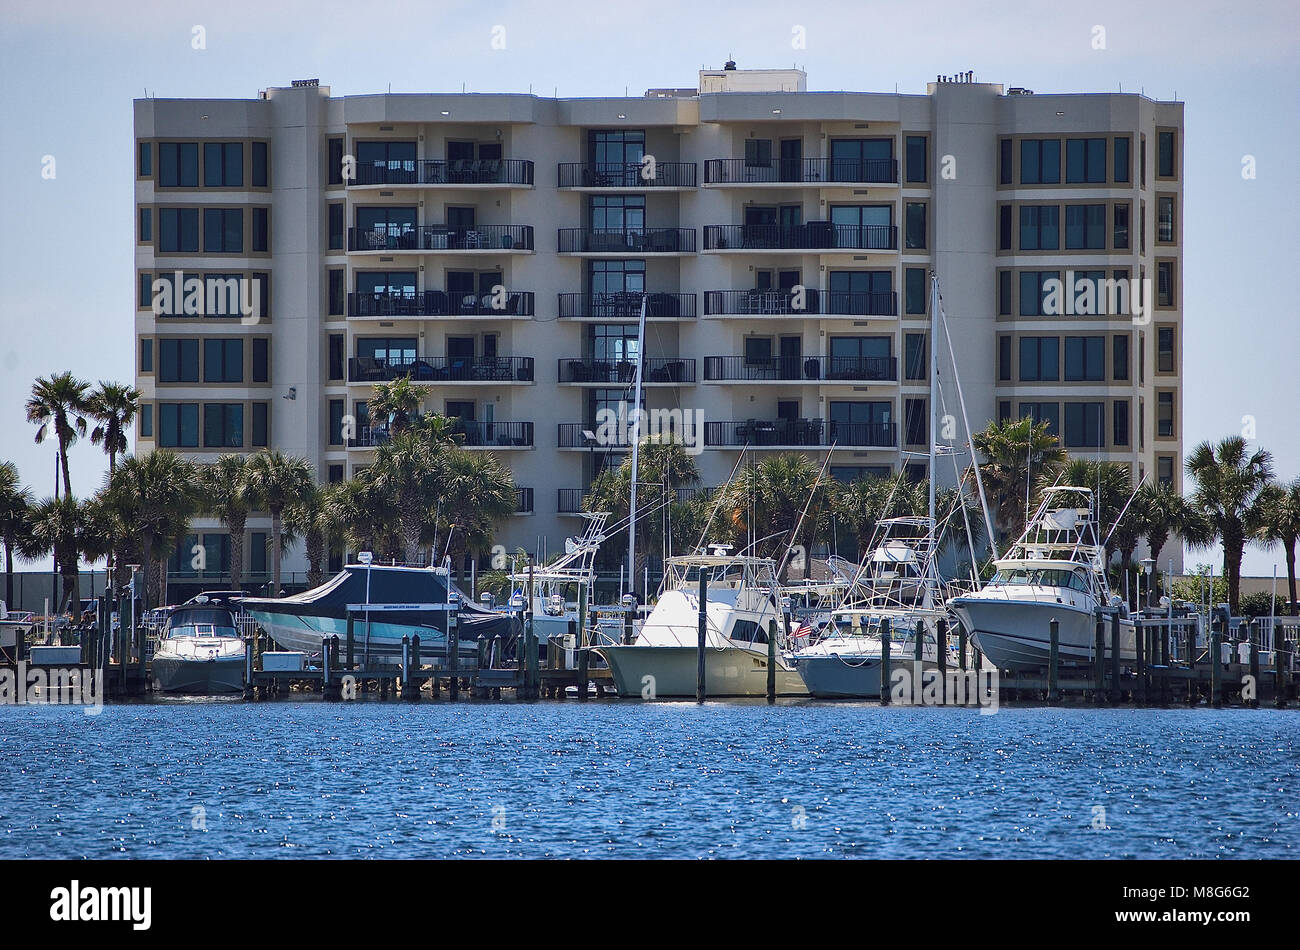 A condo unit on the coast with private boats parked in front - Stock Image